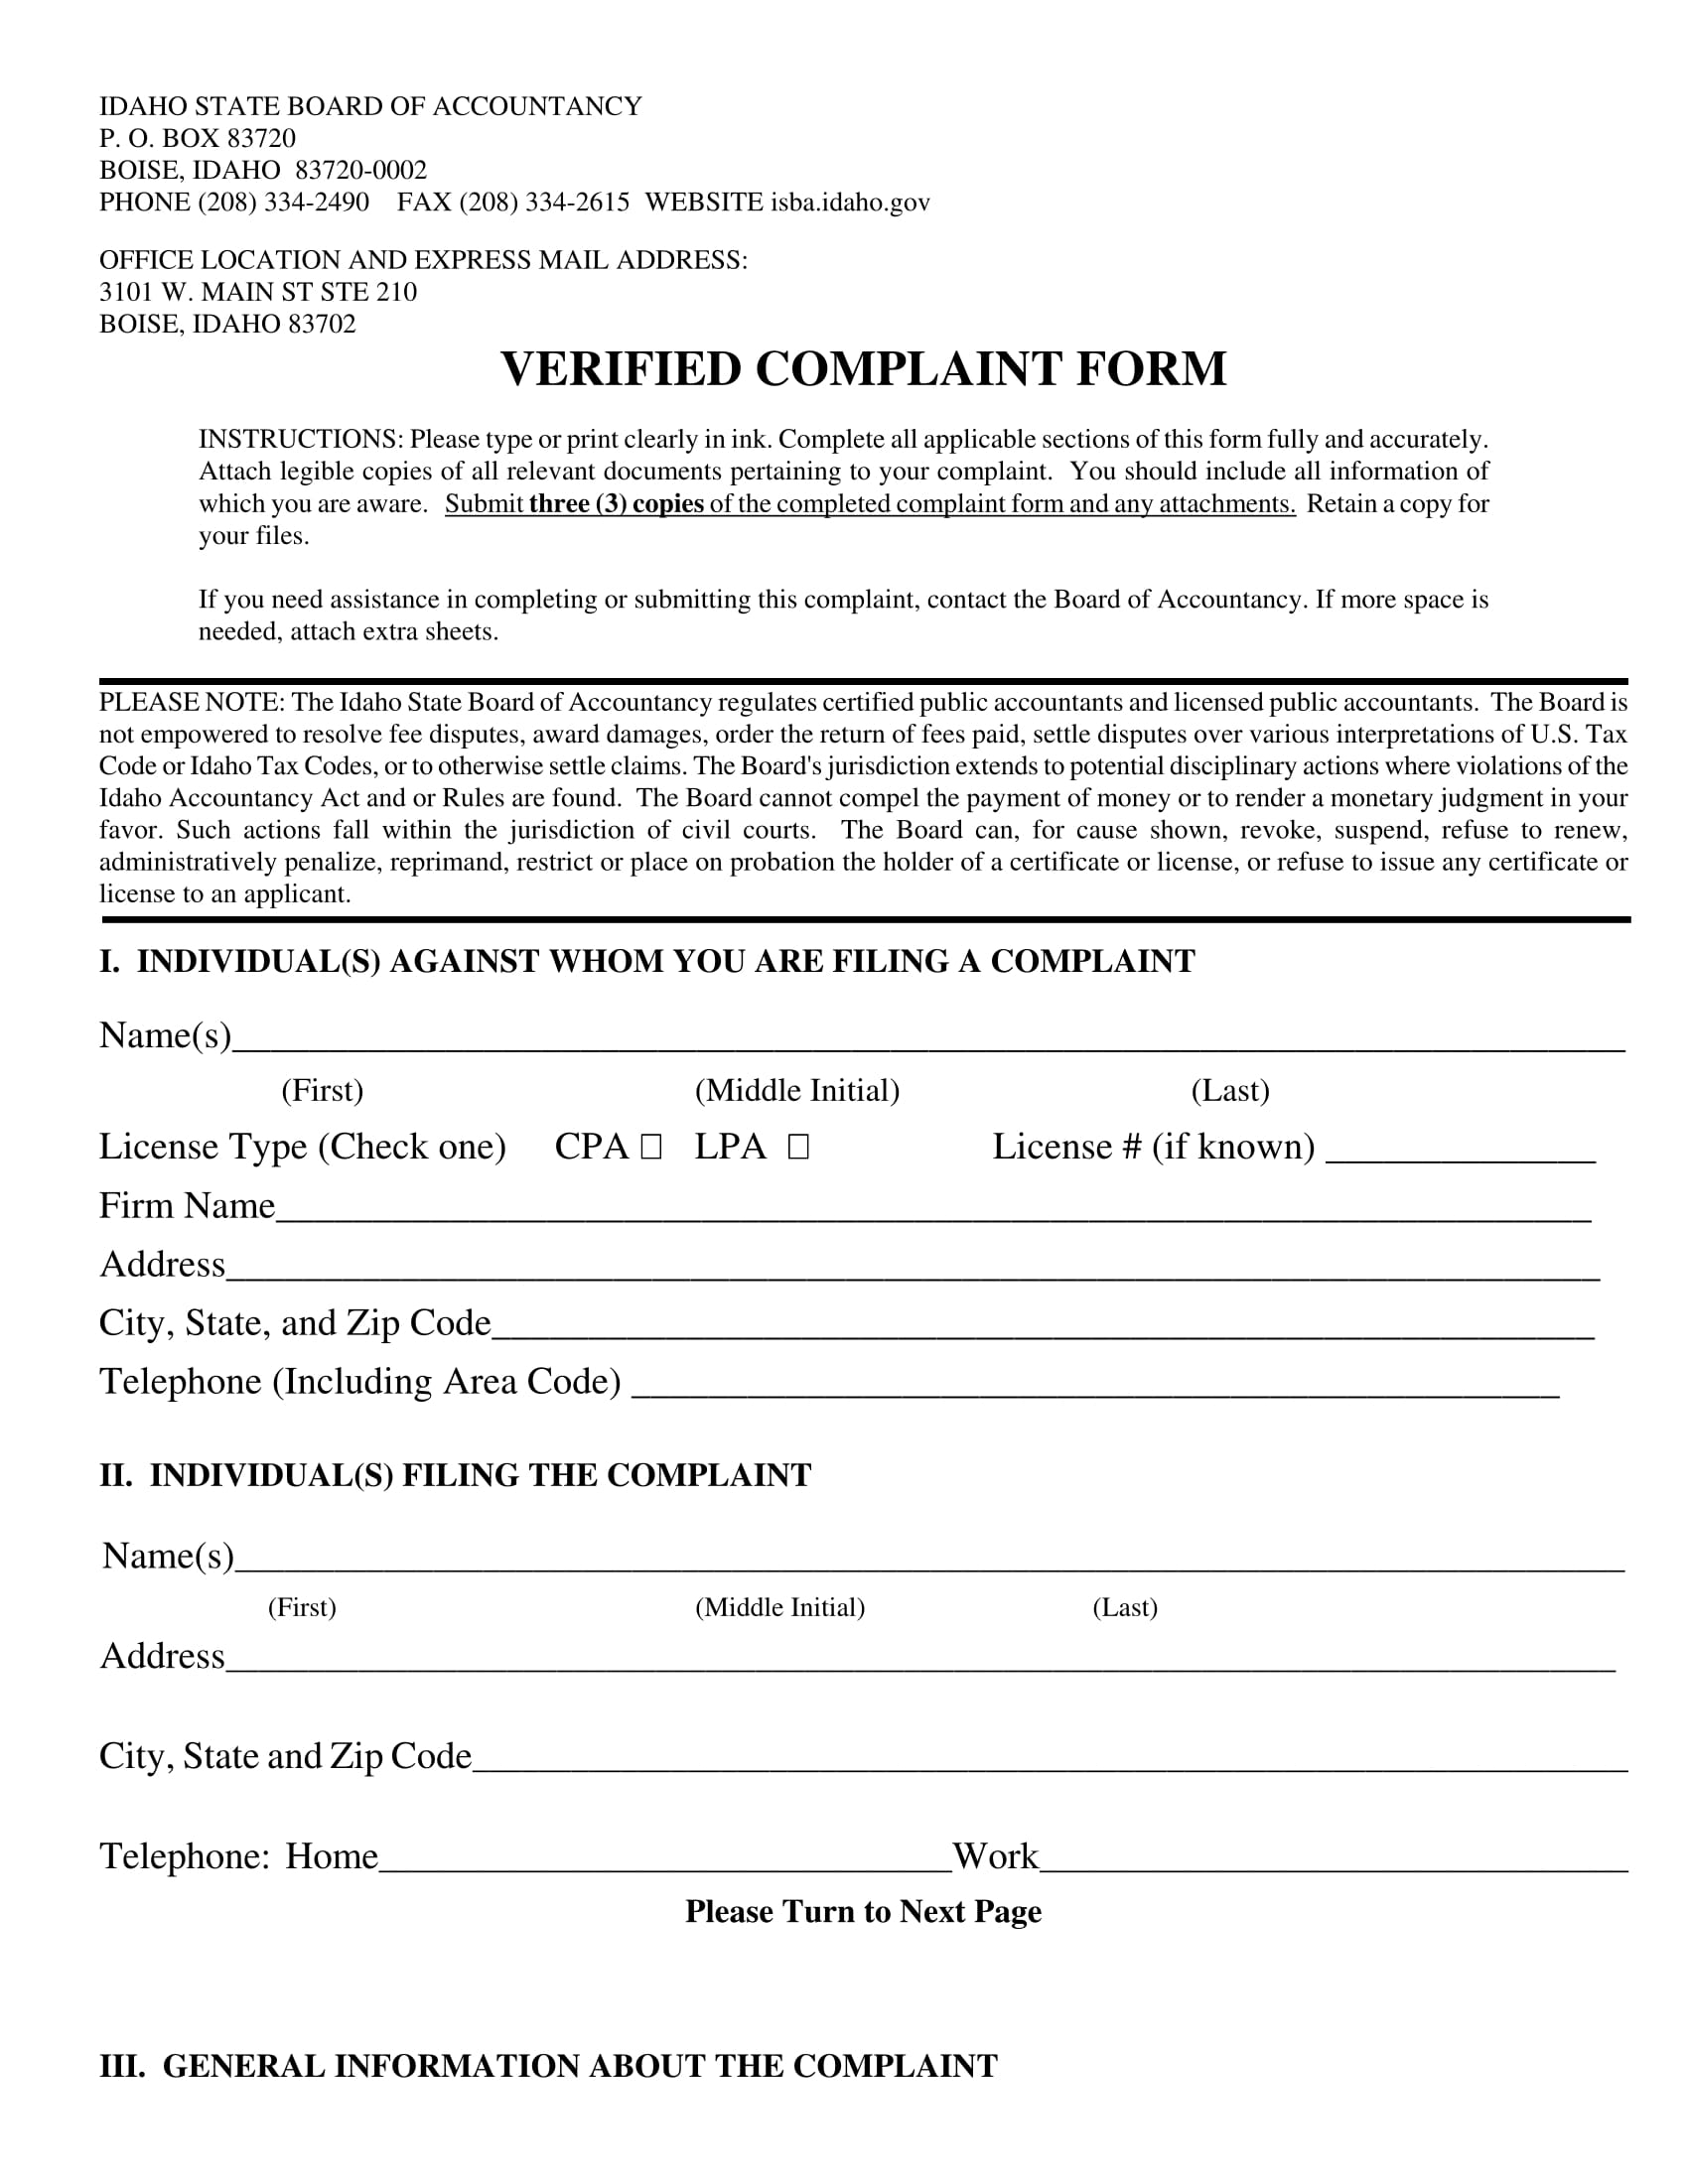 free verified complaint form 1